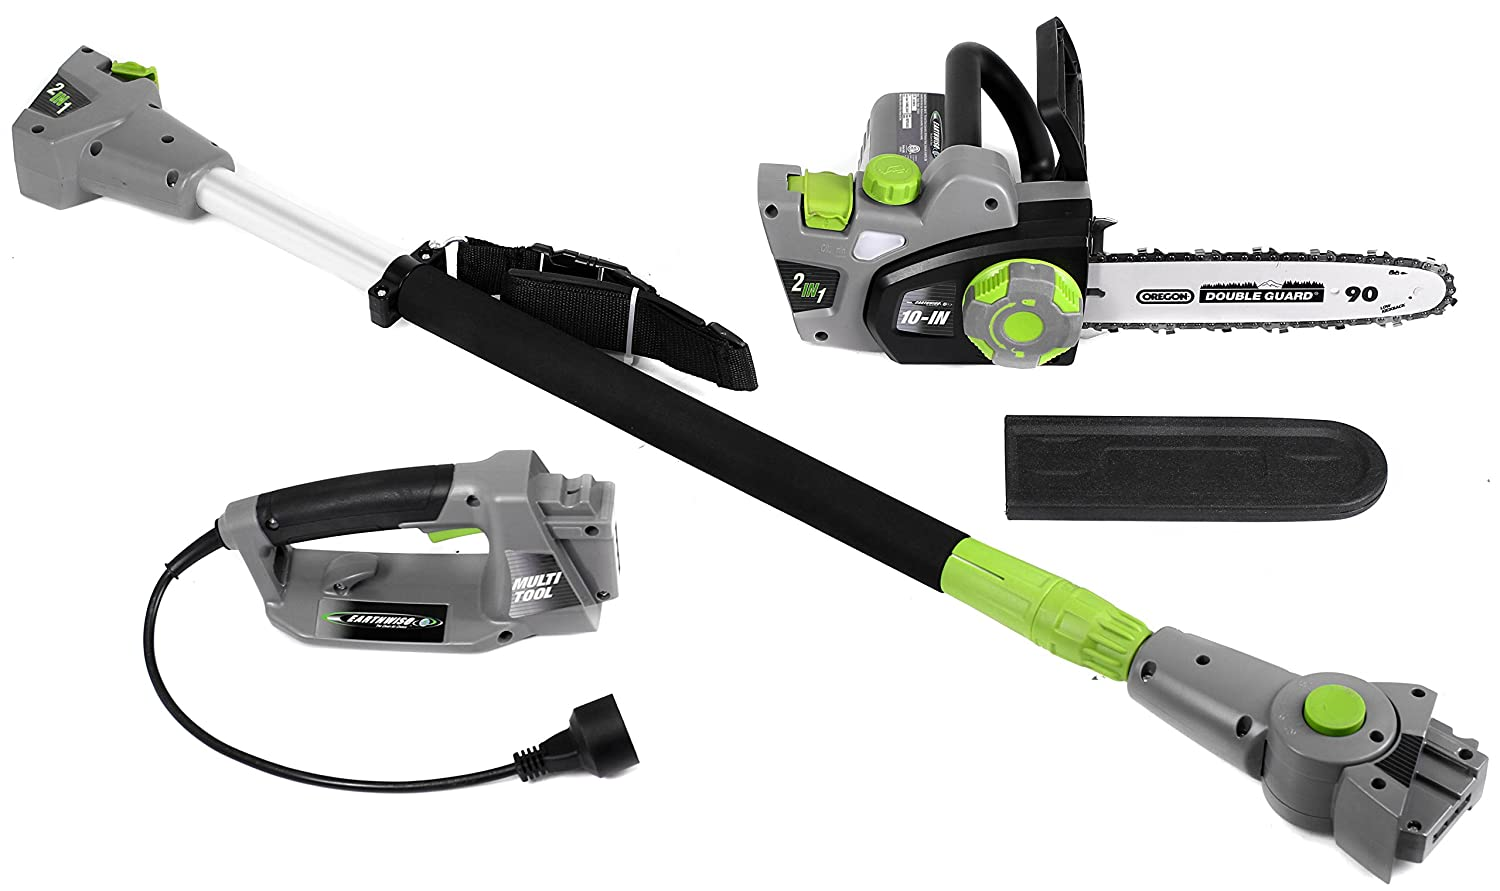 Earthwise CVPS43010 7-Amp 10-Inch Convertible 2-in-1 Corded Electric Pole Saw Chainsaw, Grey